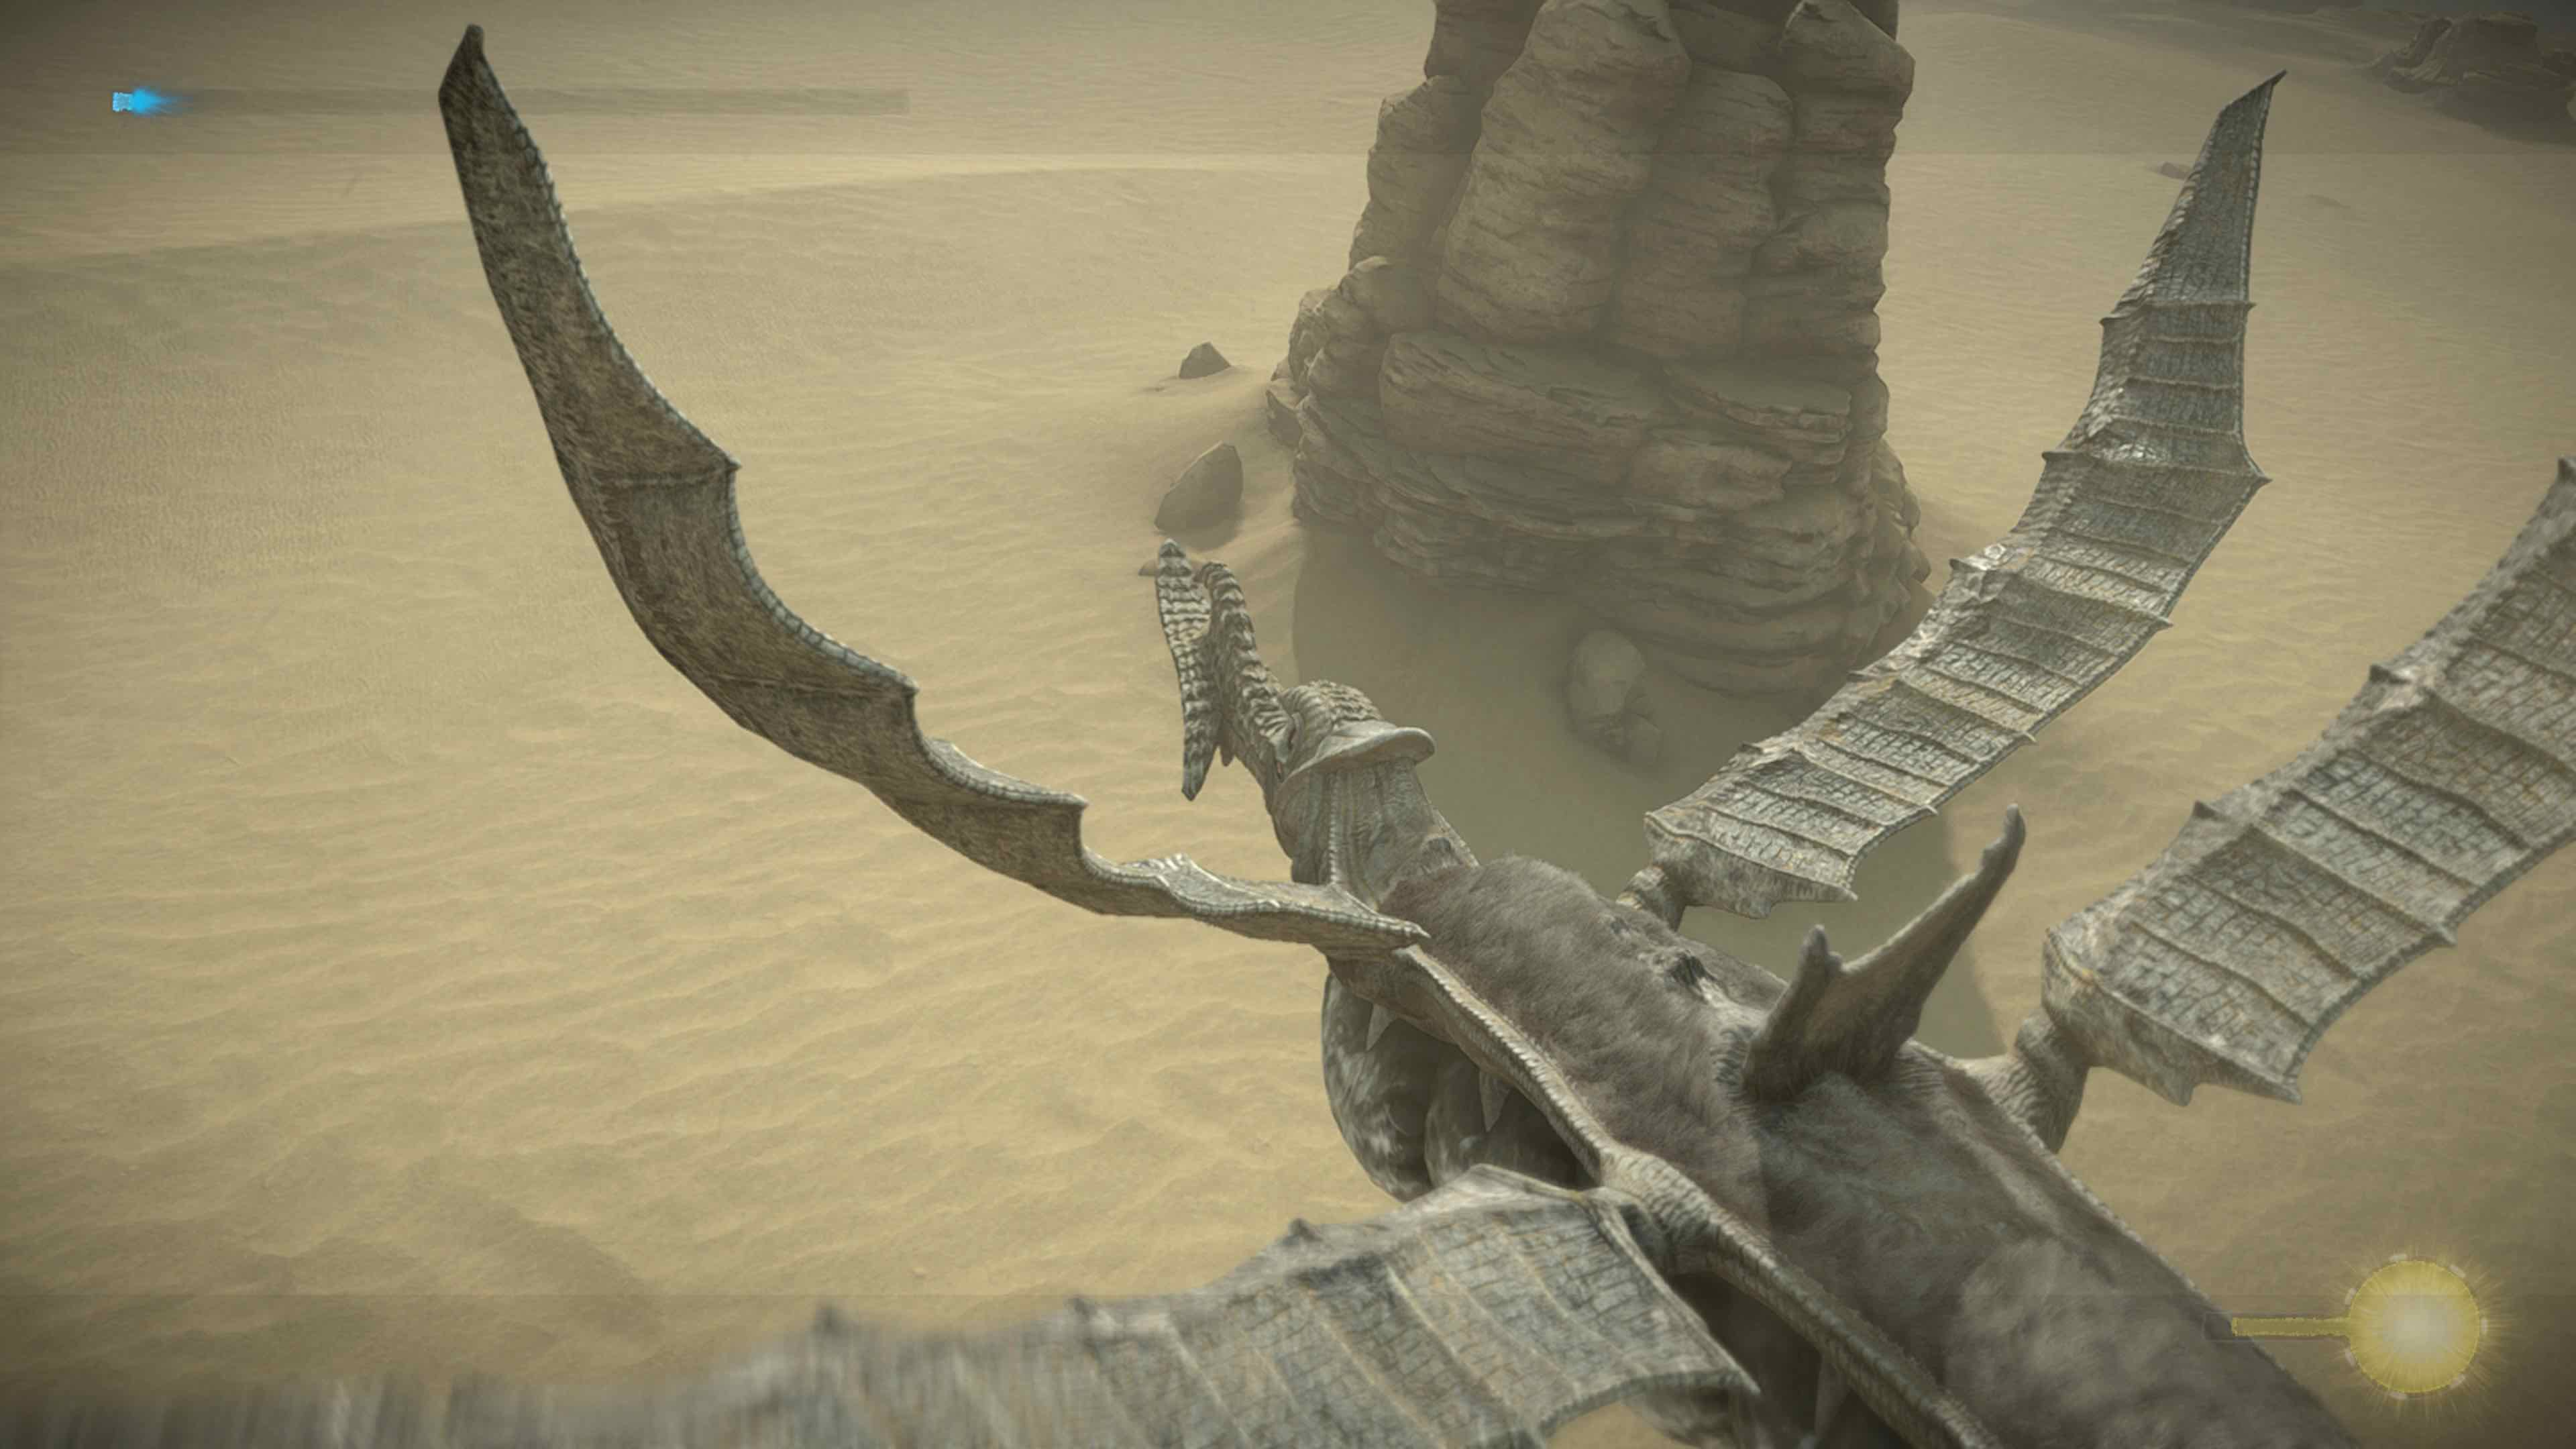 Shadow_of_the_Colossus_Coloso_13_5